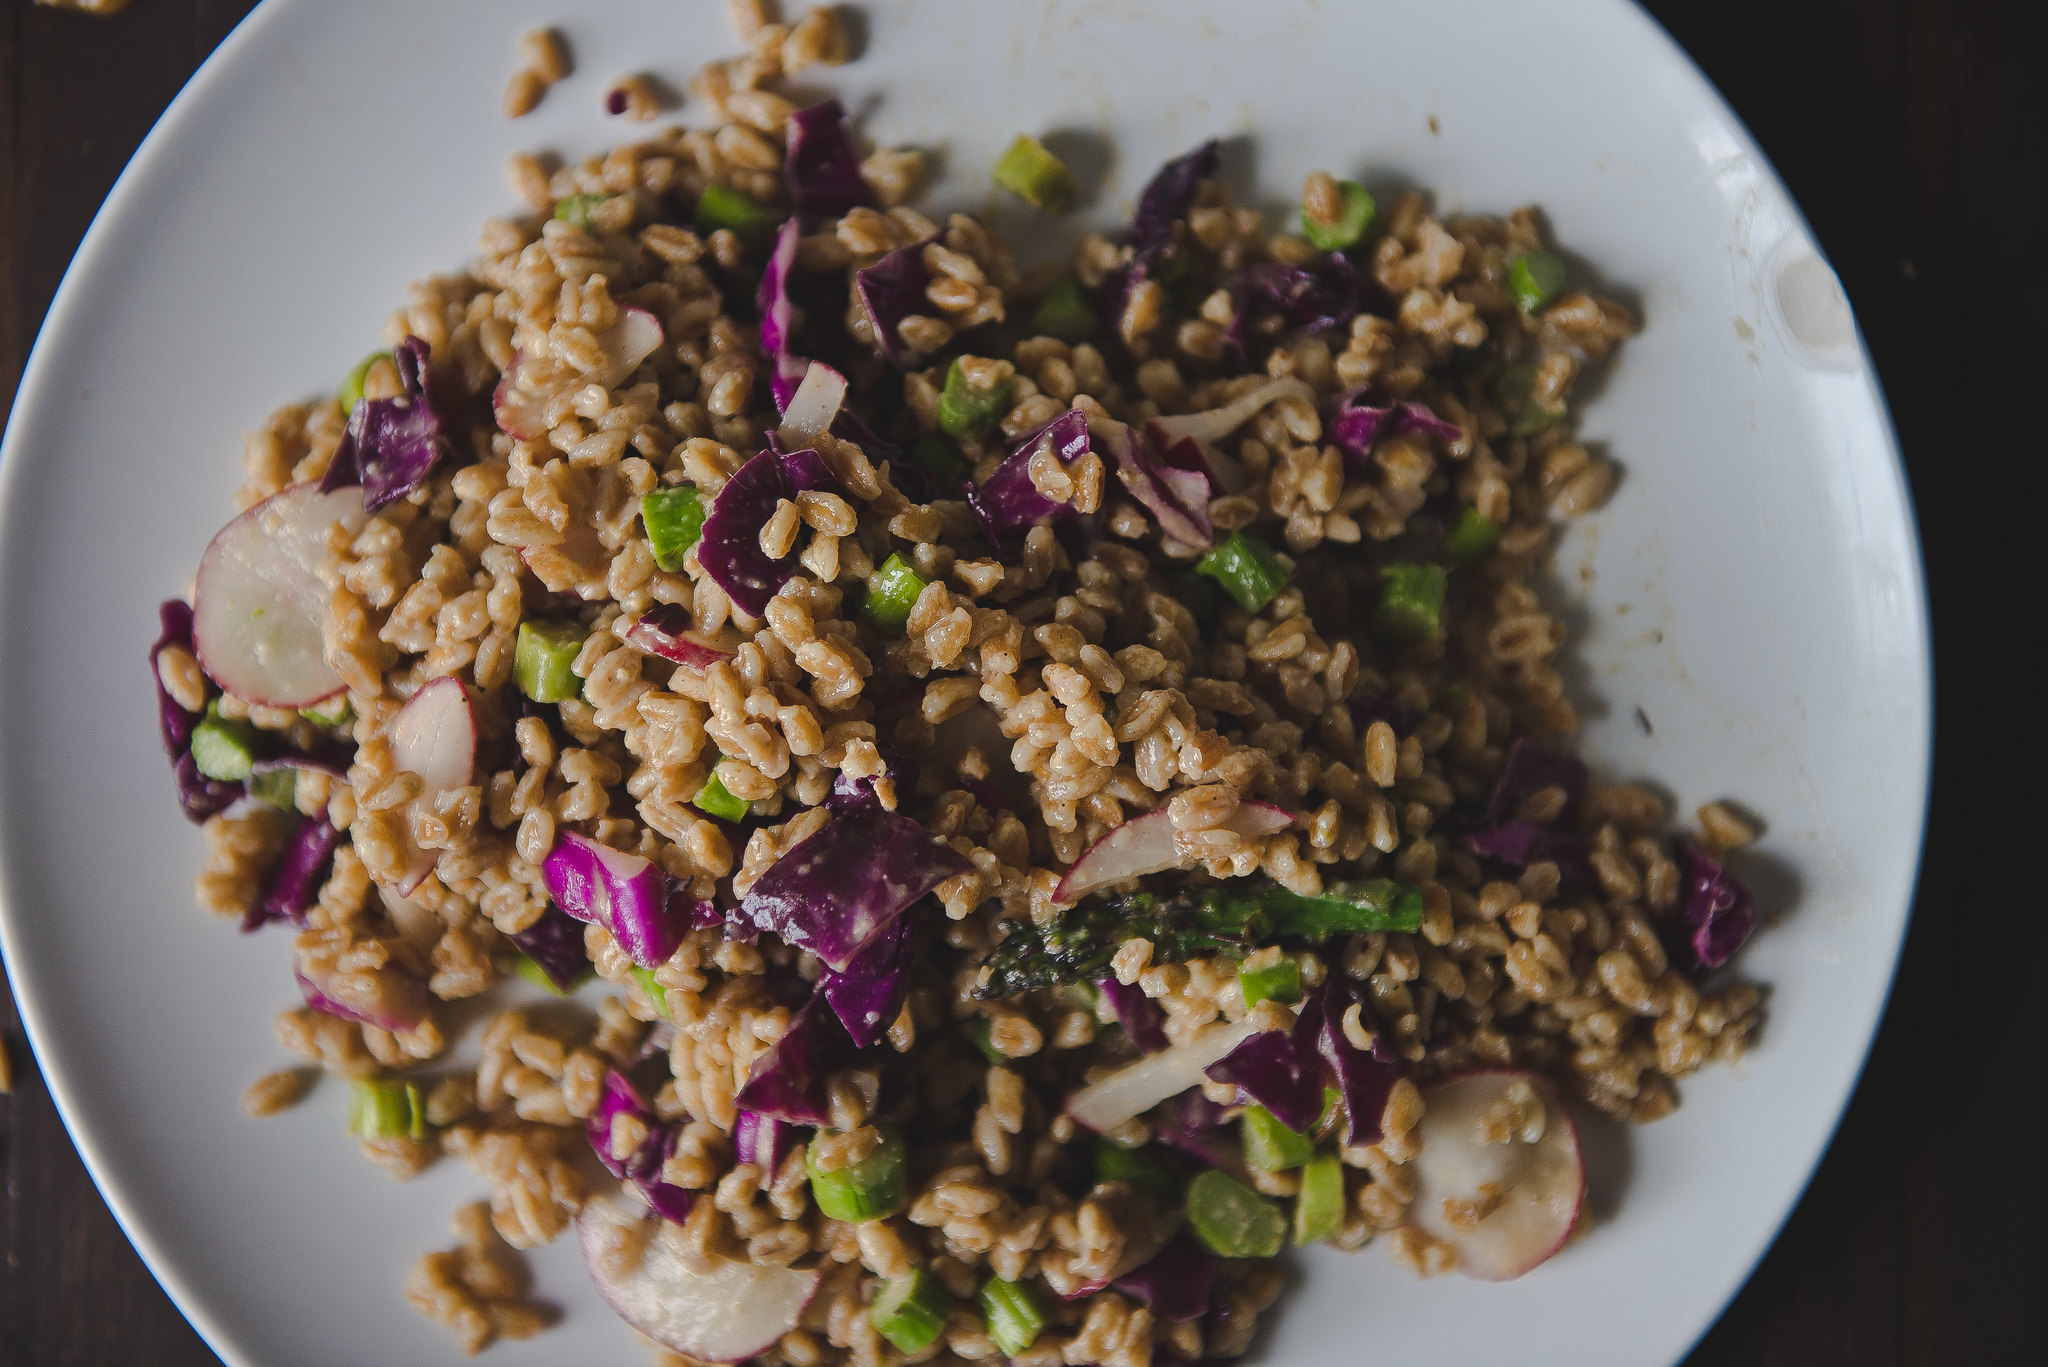 Farro & asparagus salad with sesame-miso dressing.